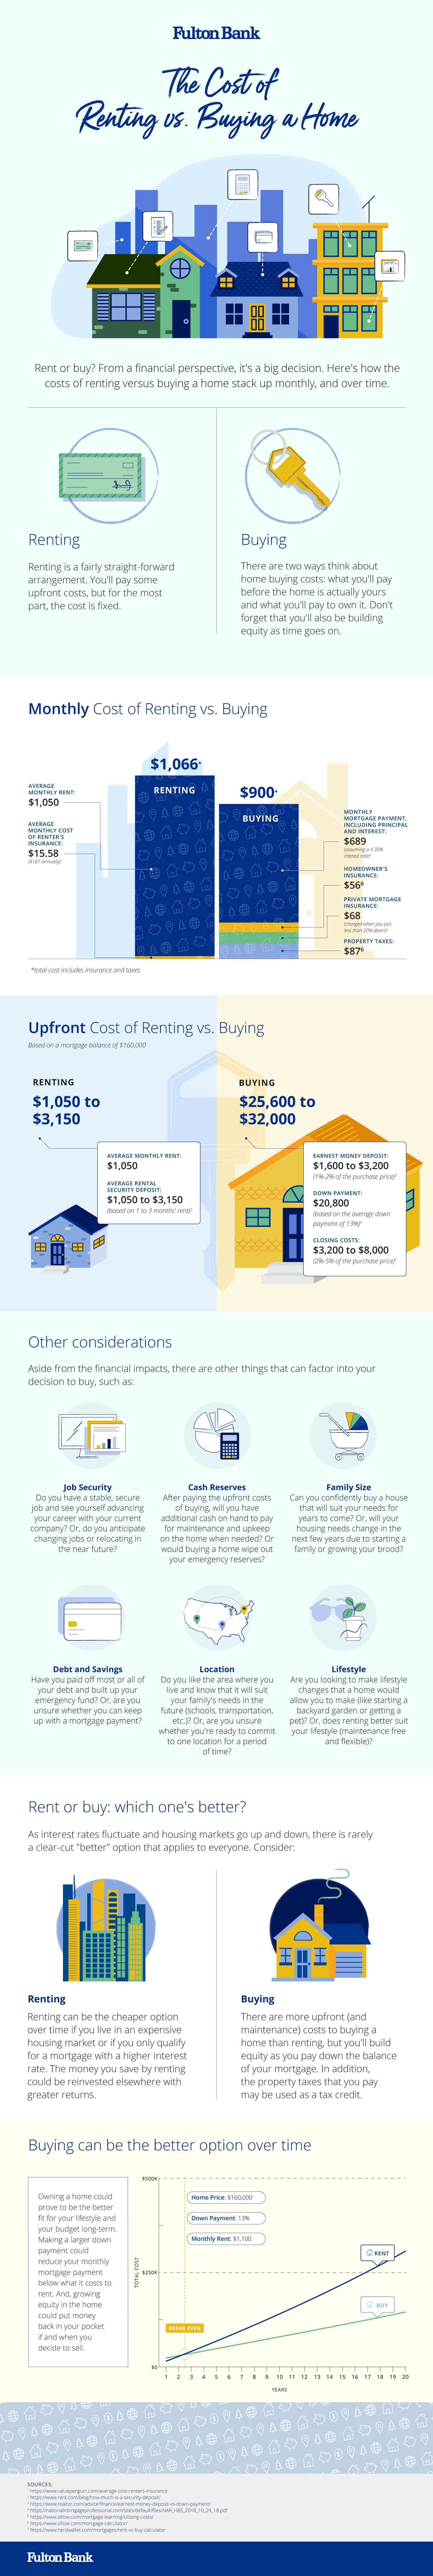 Renting vs. Buying cost comparison infographic